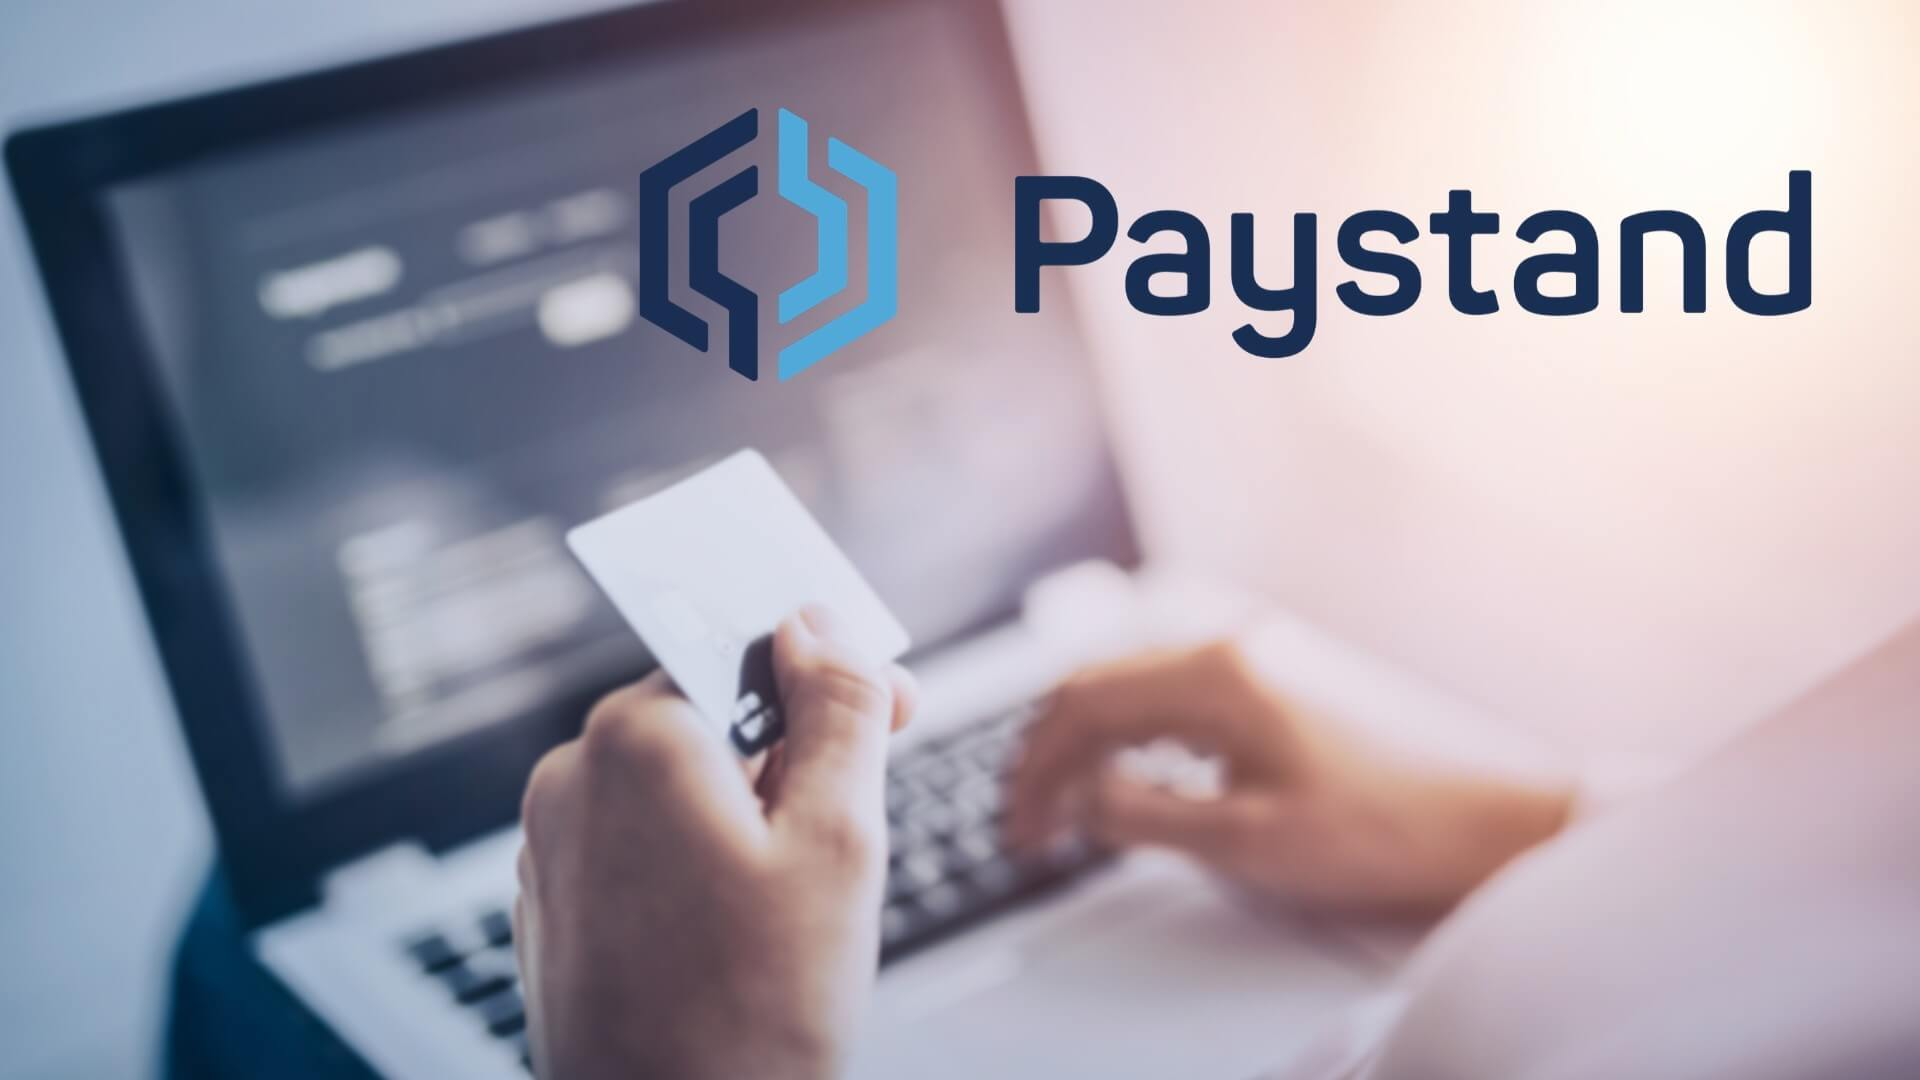 Paystand and Japan's JCB Ink MoU for Blockchain-based B2B Payment Solution